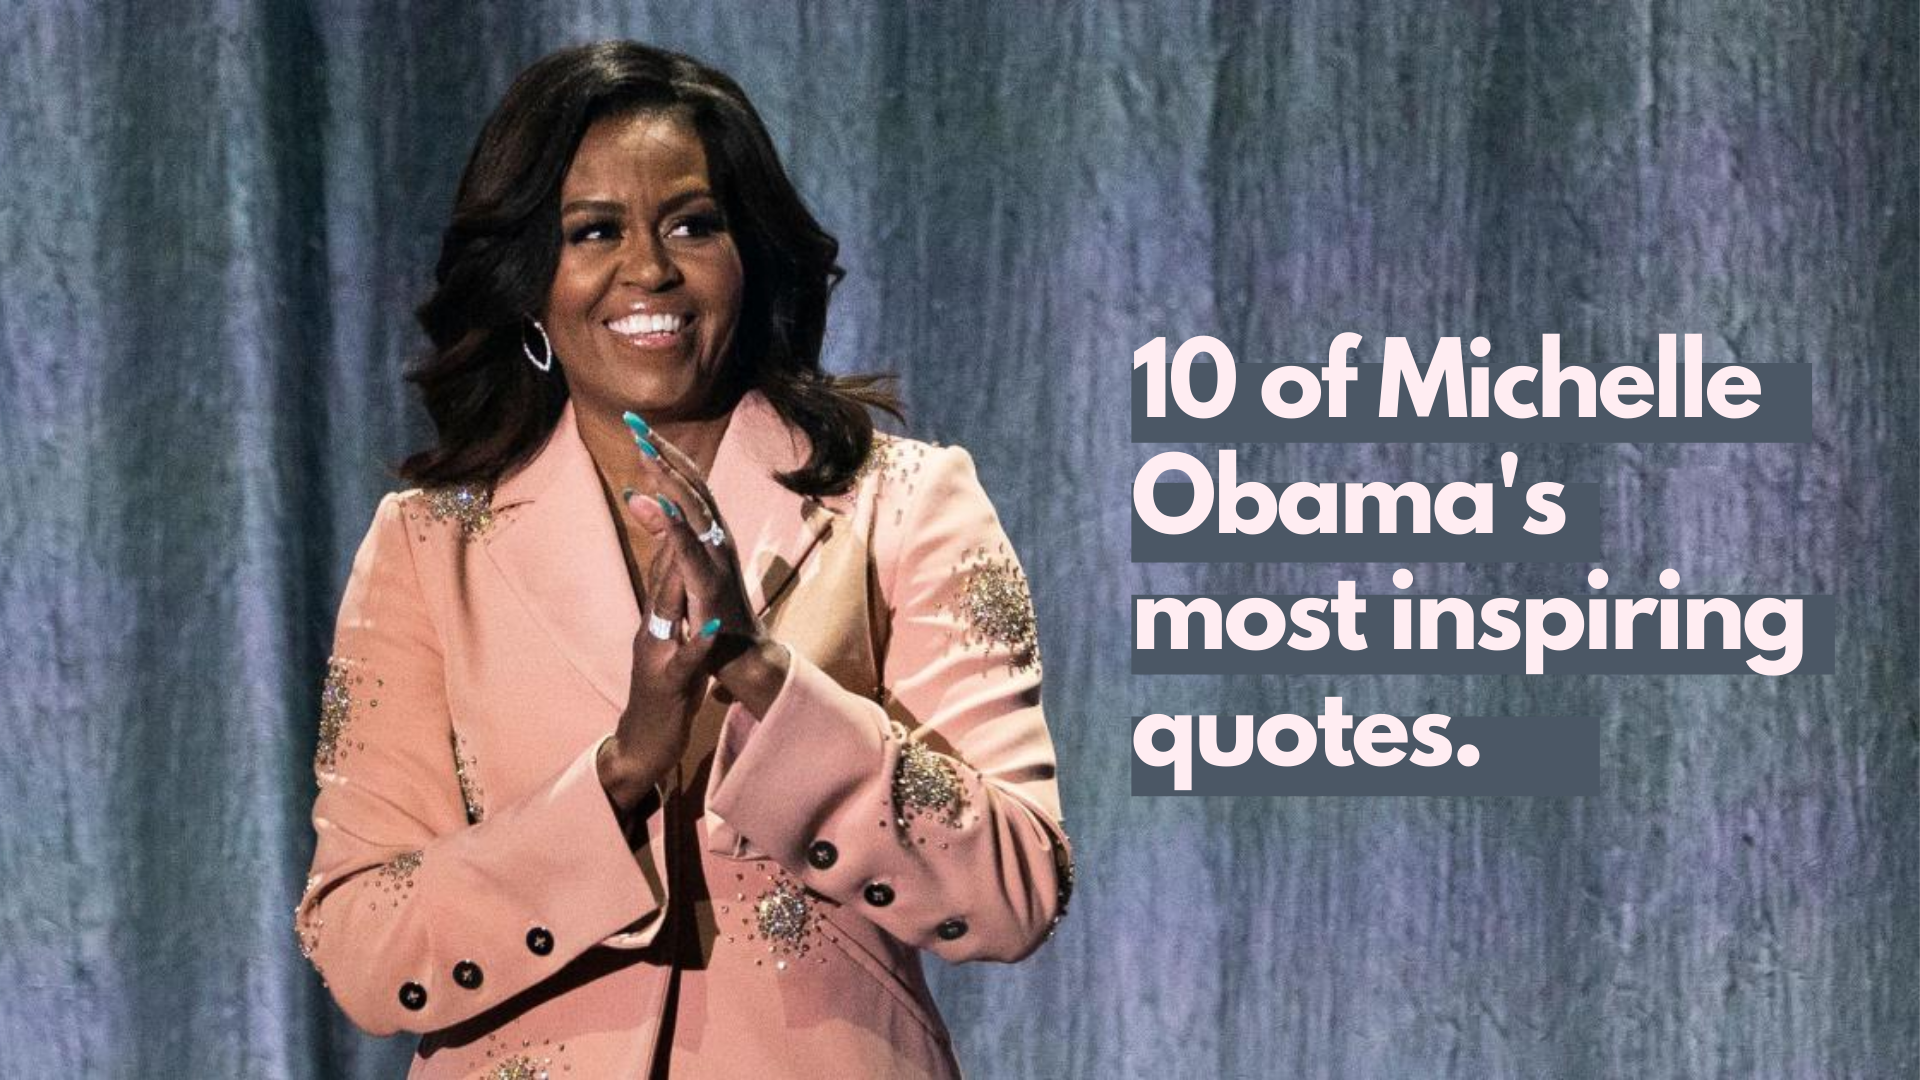 Michelle Obama's Most Inspiring Quotes